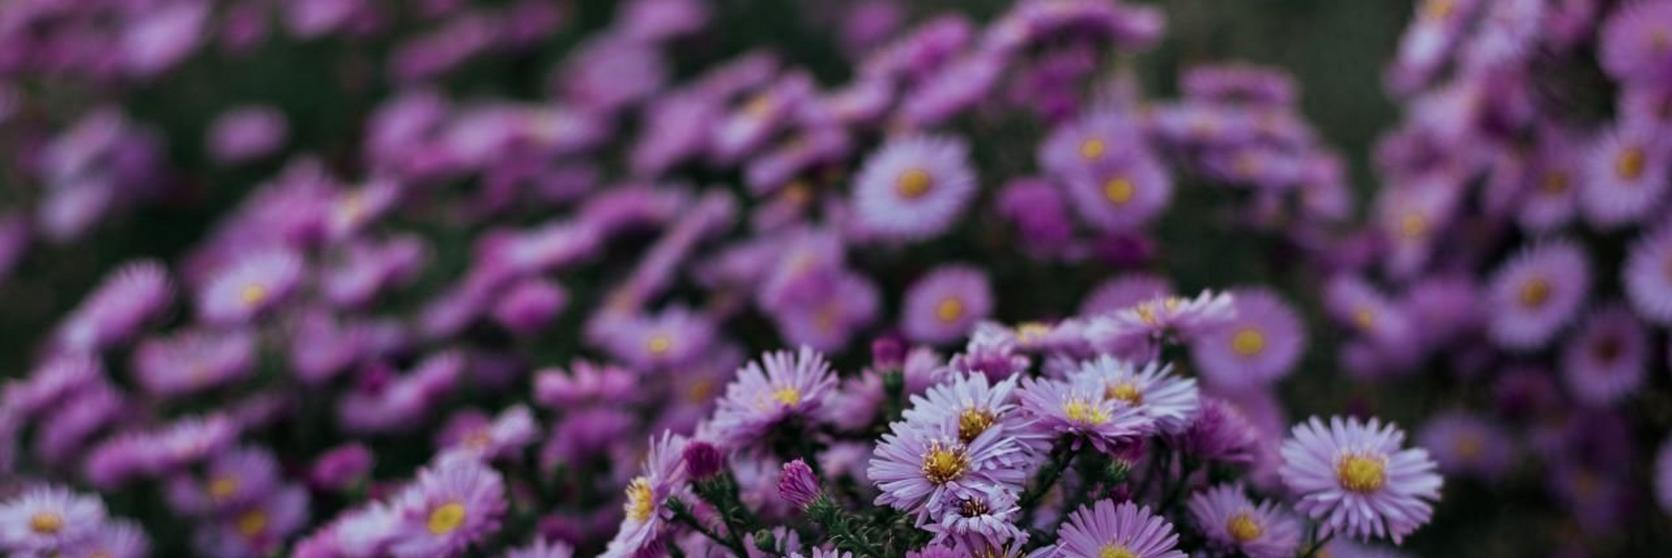 Aster-group